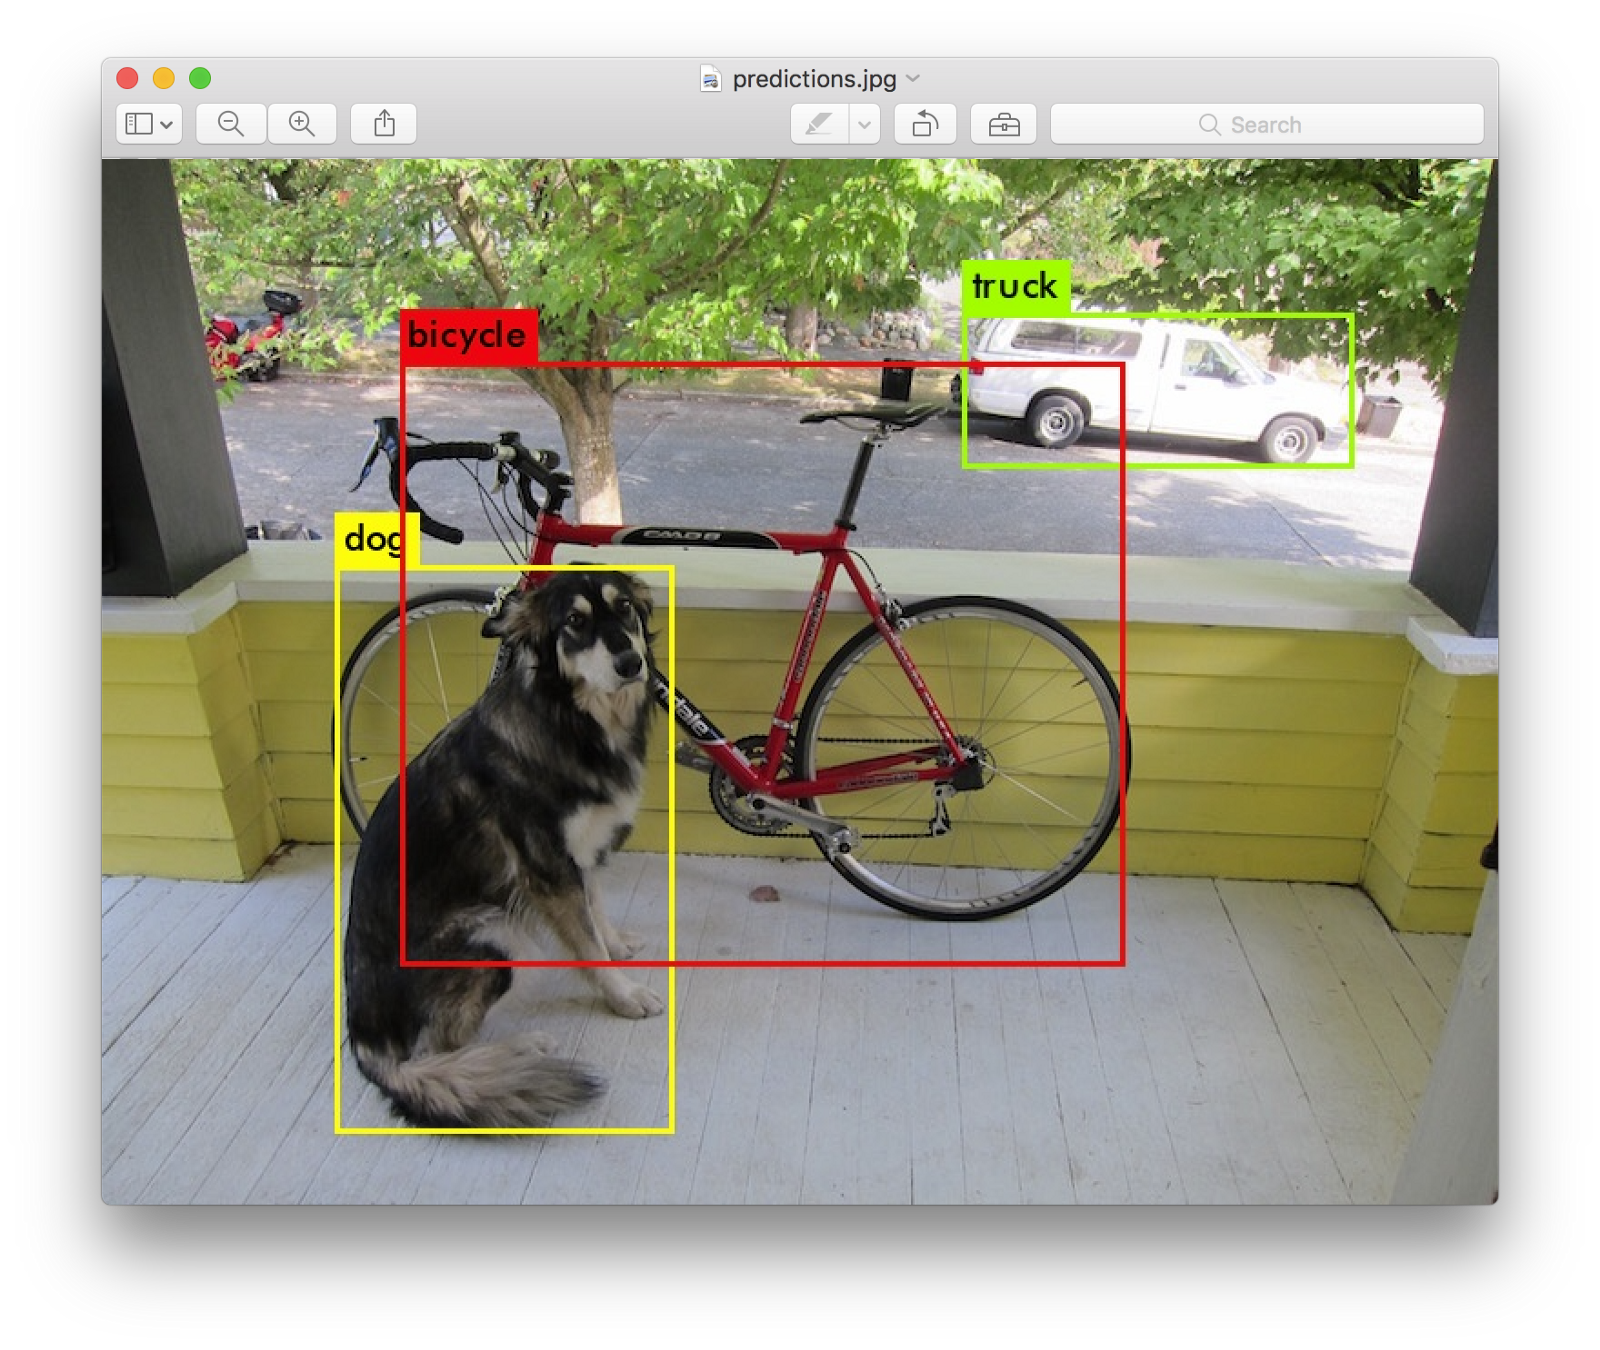 Is Object Detection a Done Deal Yet?